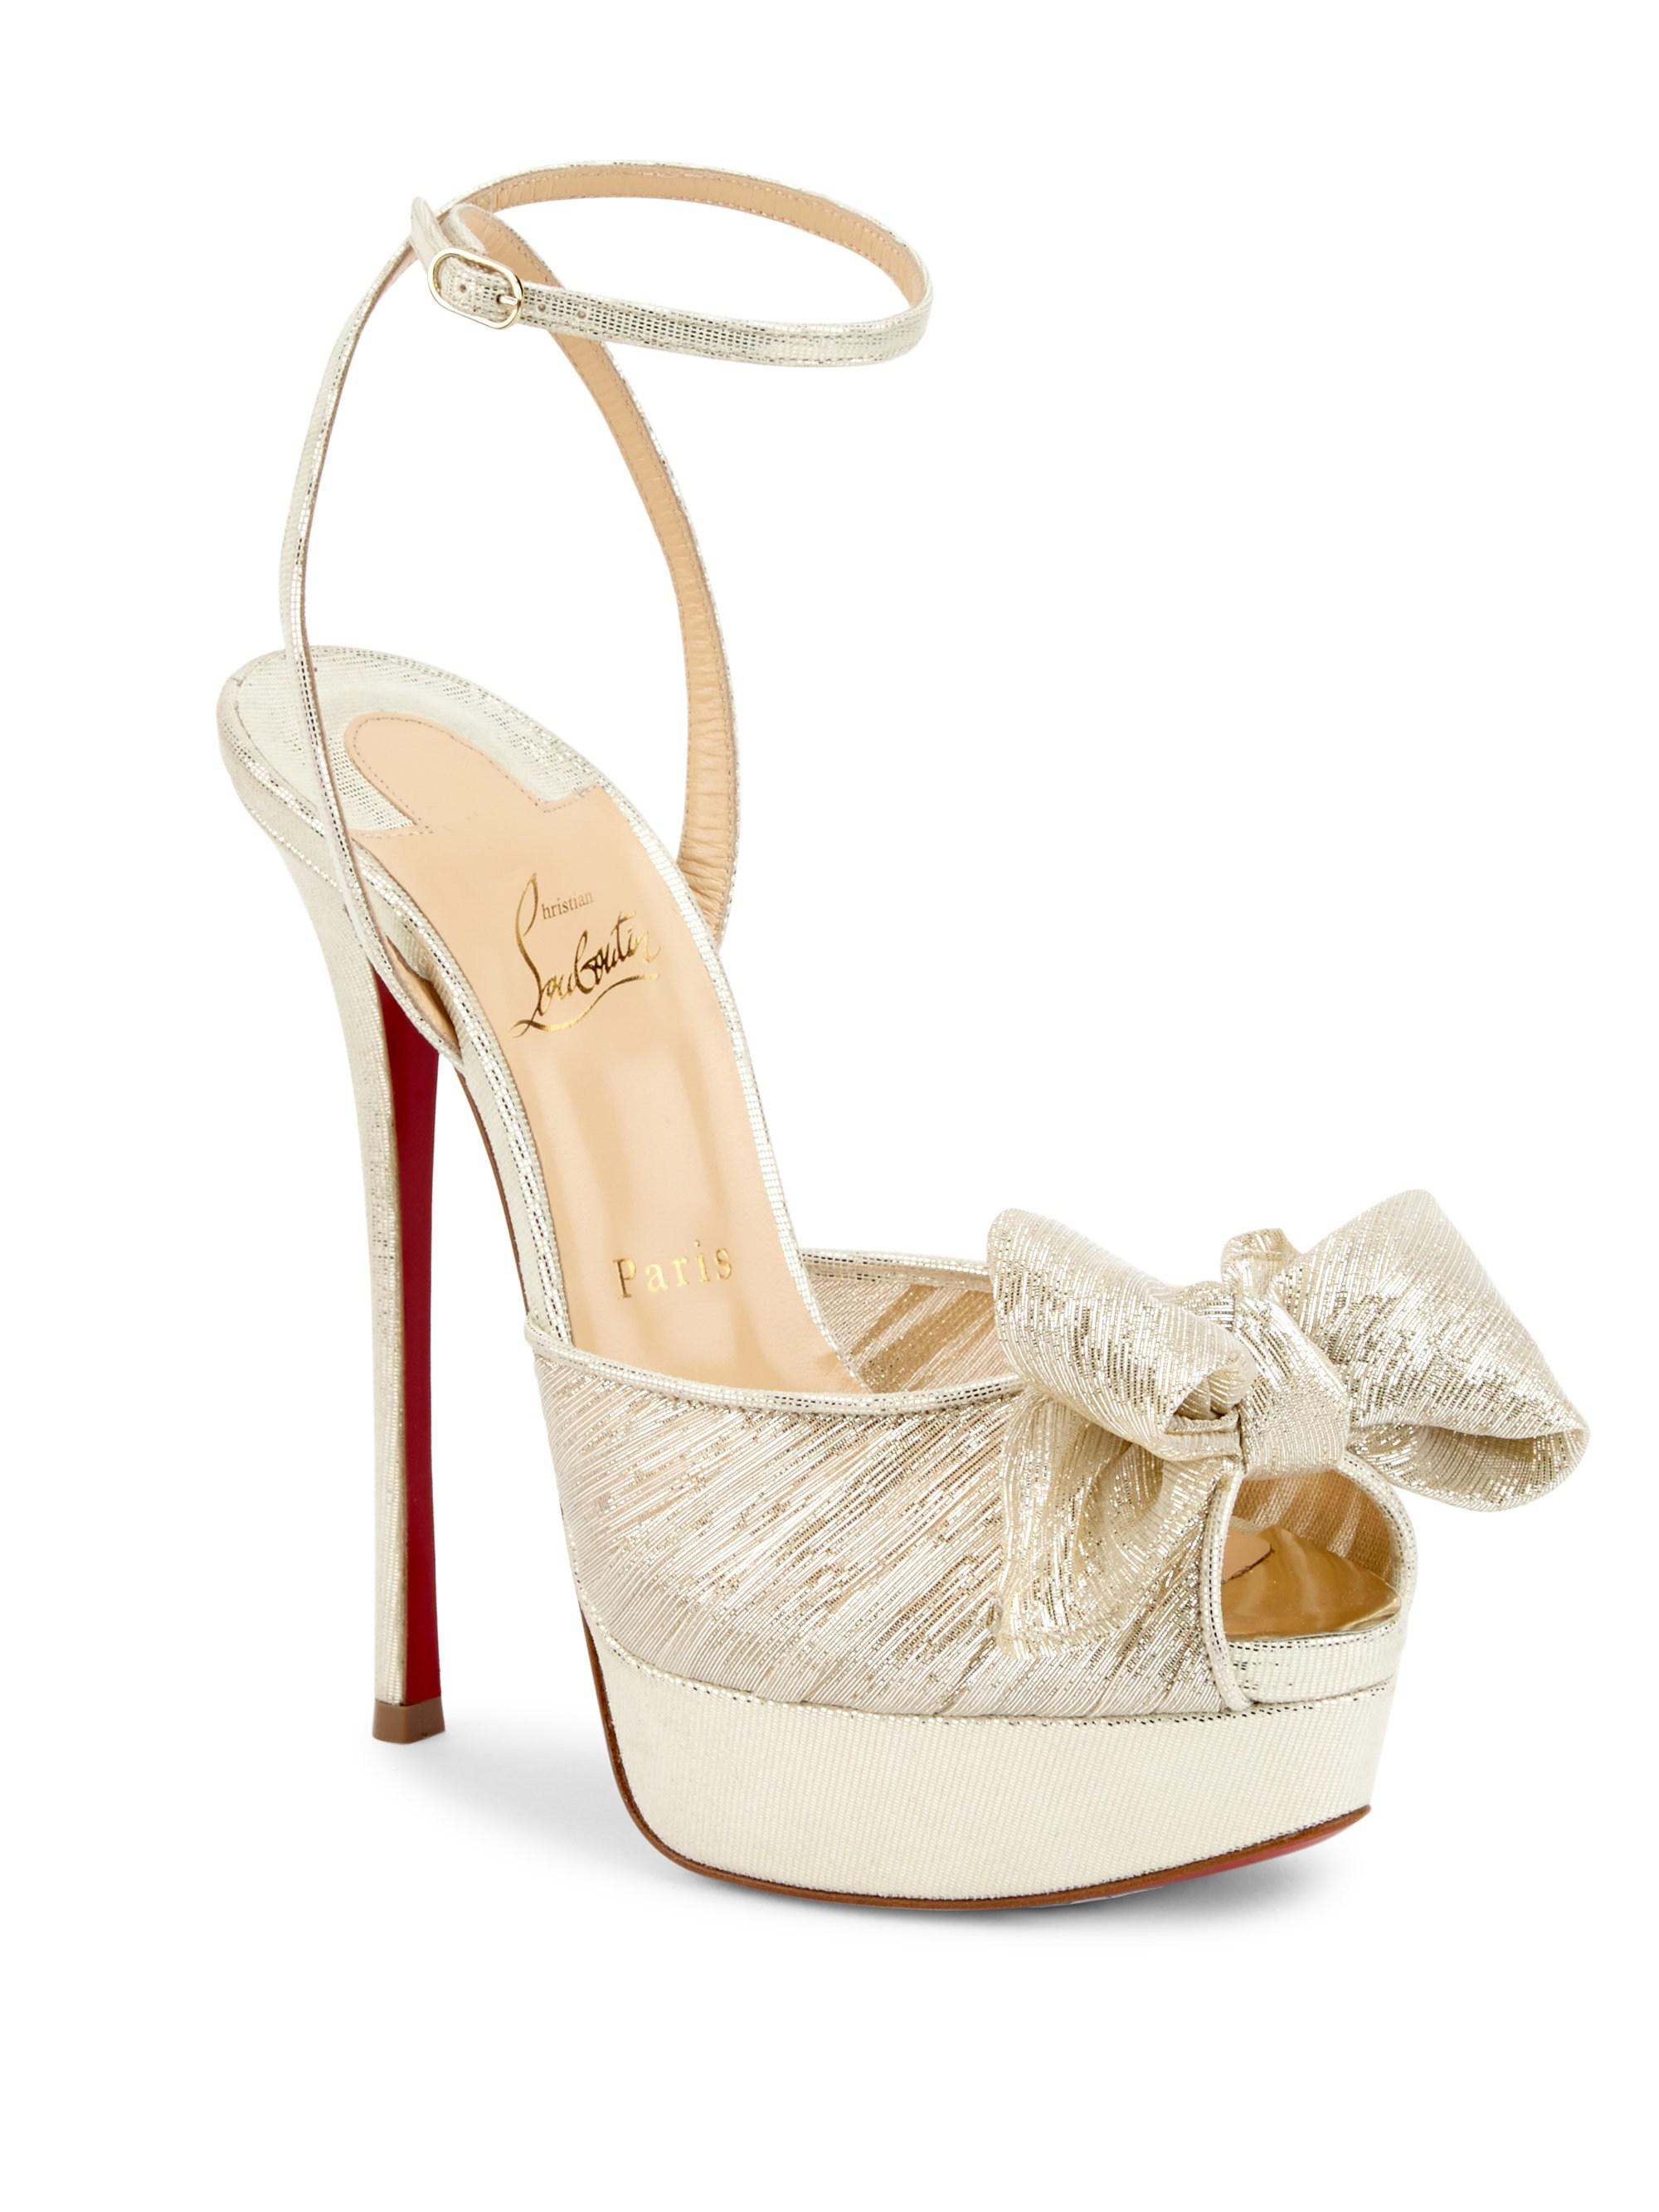 ad79bcc8a02 Christian Louboutin Artydiva 150 Platform Ankle-strap Sandals in ...